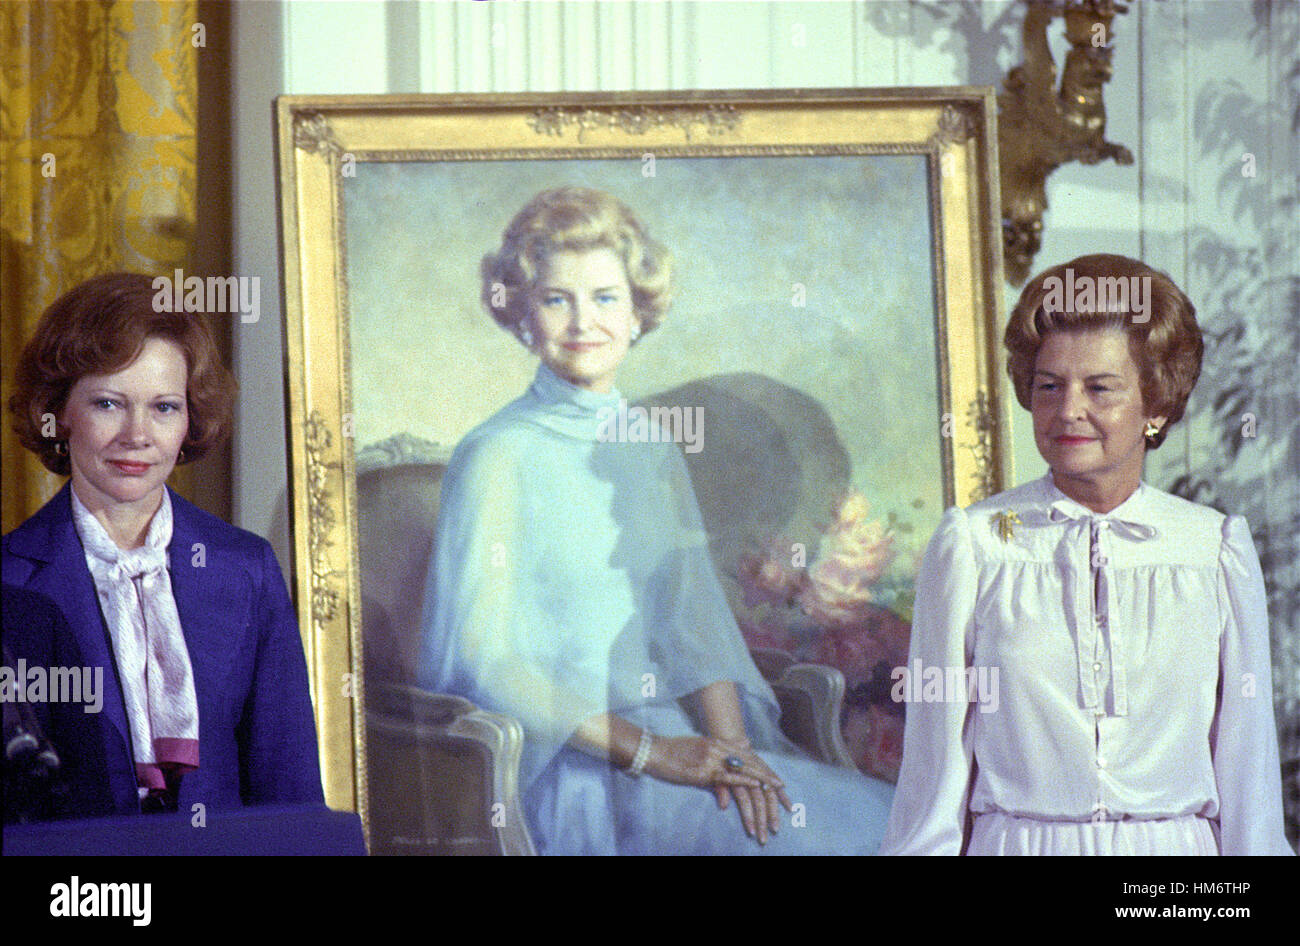 First lady Rosalynn Carter, left, and former first lady Betty Ford pose next to the portrait of Mrs. Ford that was Stock Photo